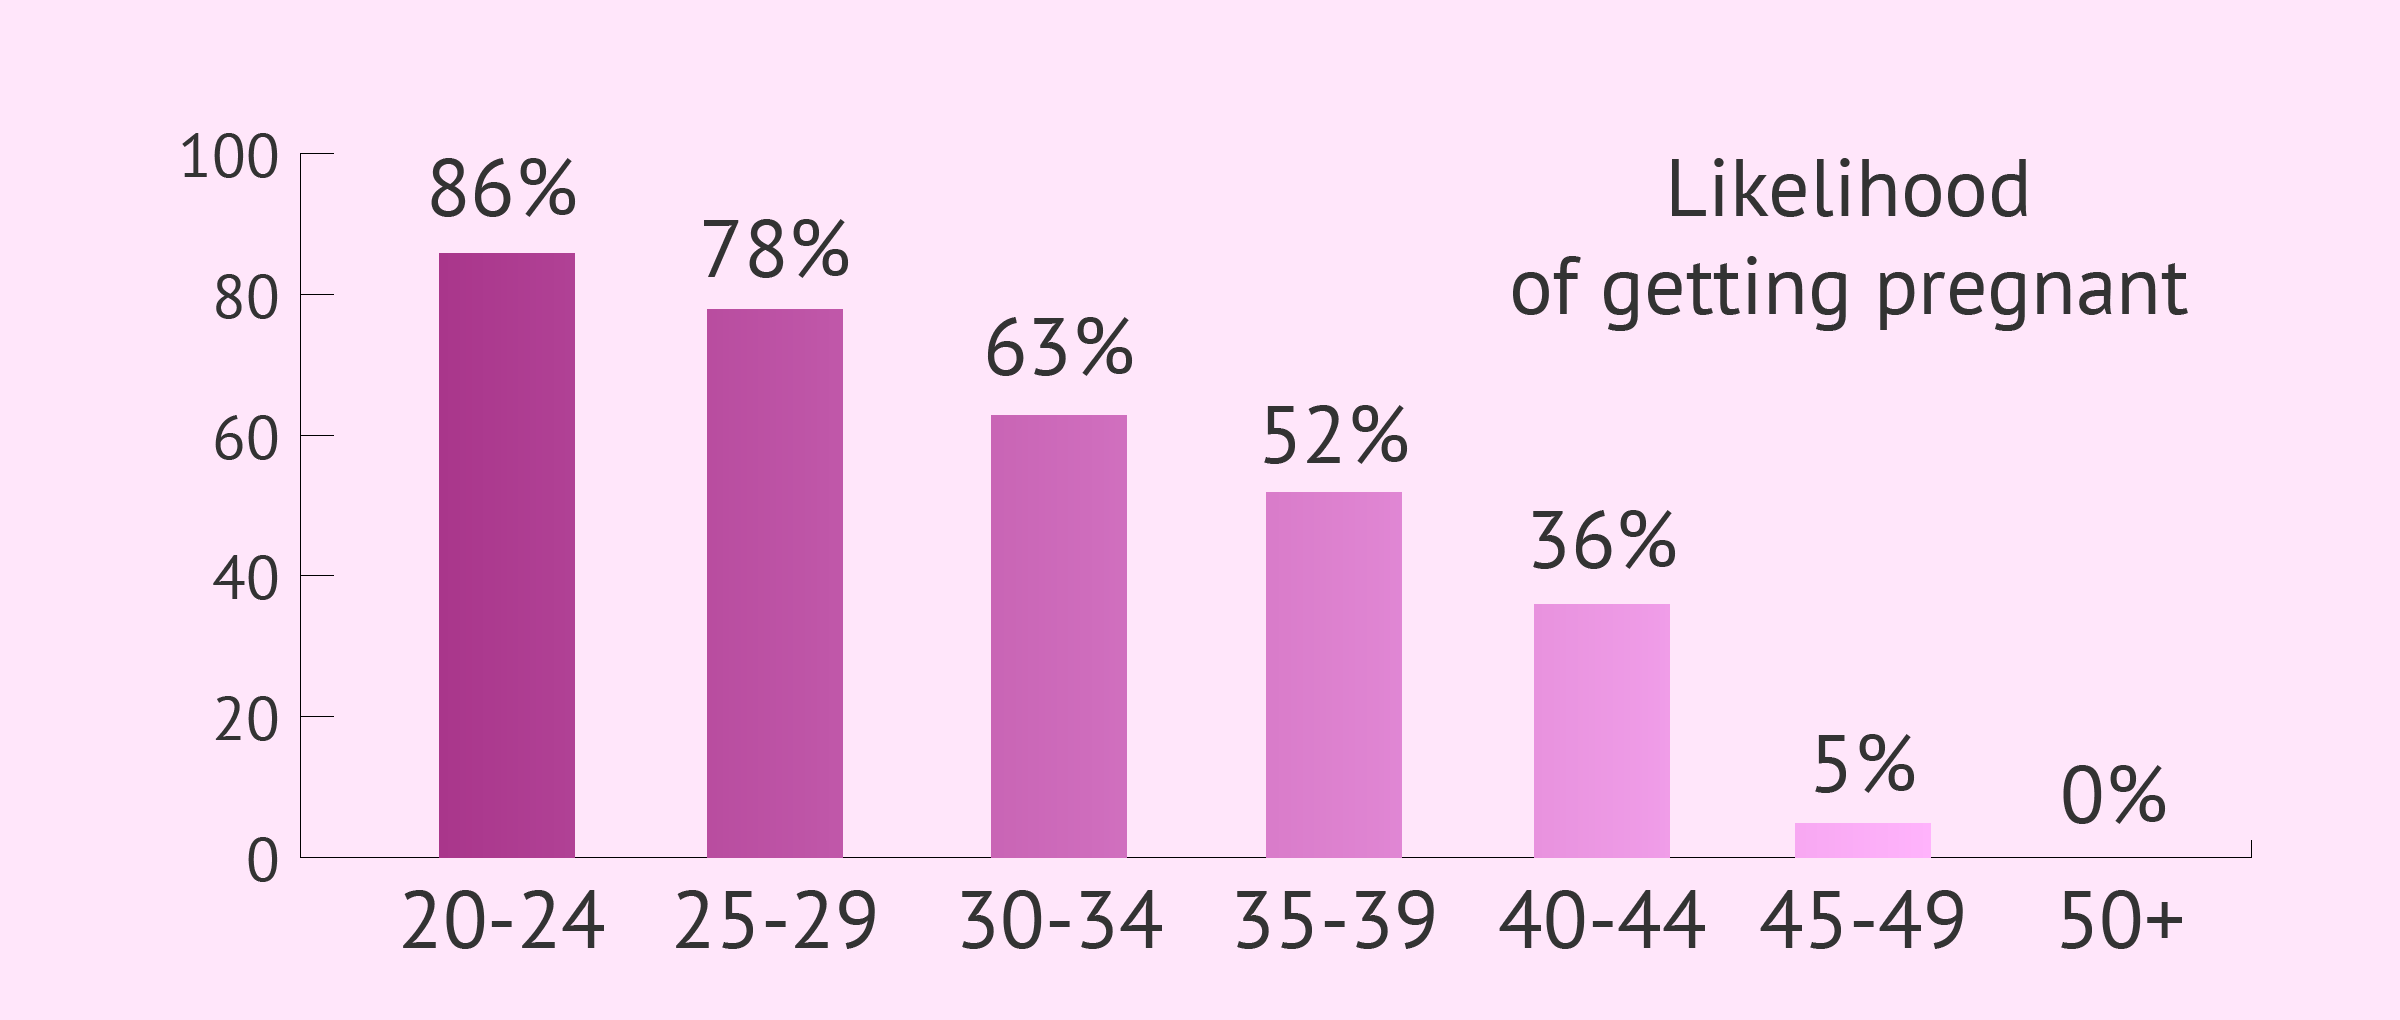 Female fertility rates by age chart